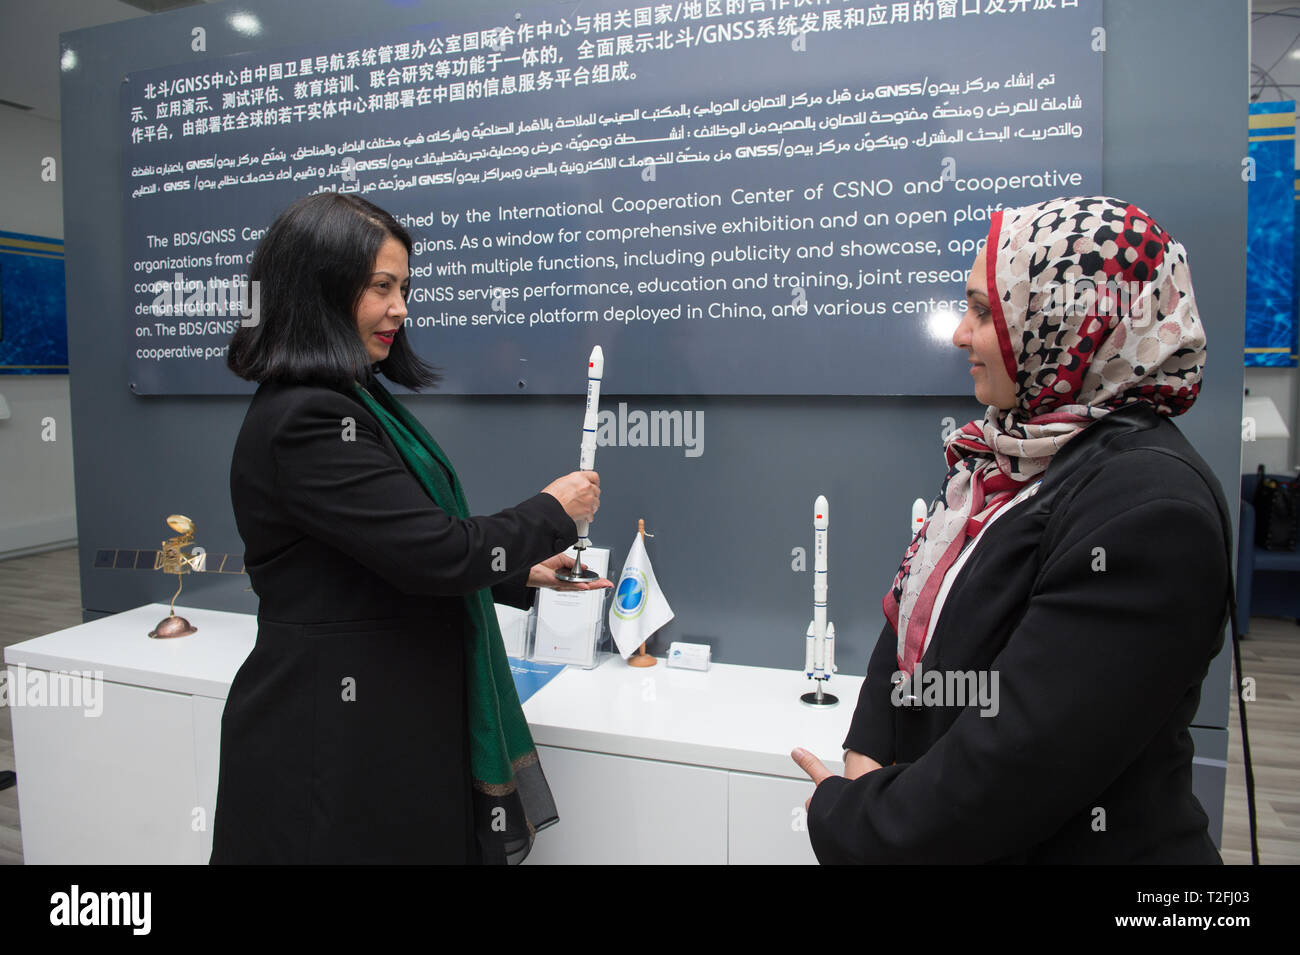 (190402) -- BEIJING, April 2, 2019 (Xinhua) -- Nada Laabidi (L), a narrator at the China-Arab States BDS/GNSS Center, introduces China's carrier rocket sending satellites of BeiDou Navigation Satellite System (BDS), in Tunis, capital of Tunisia, April 1, 2019. (Xinhua/Meng Tao) - Stock Image